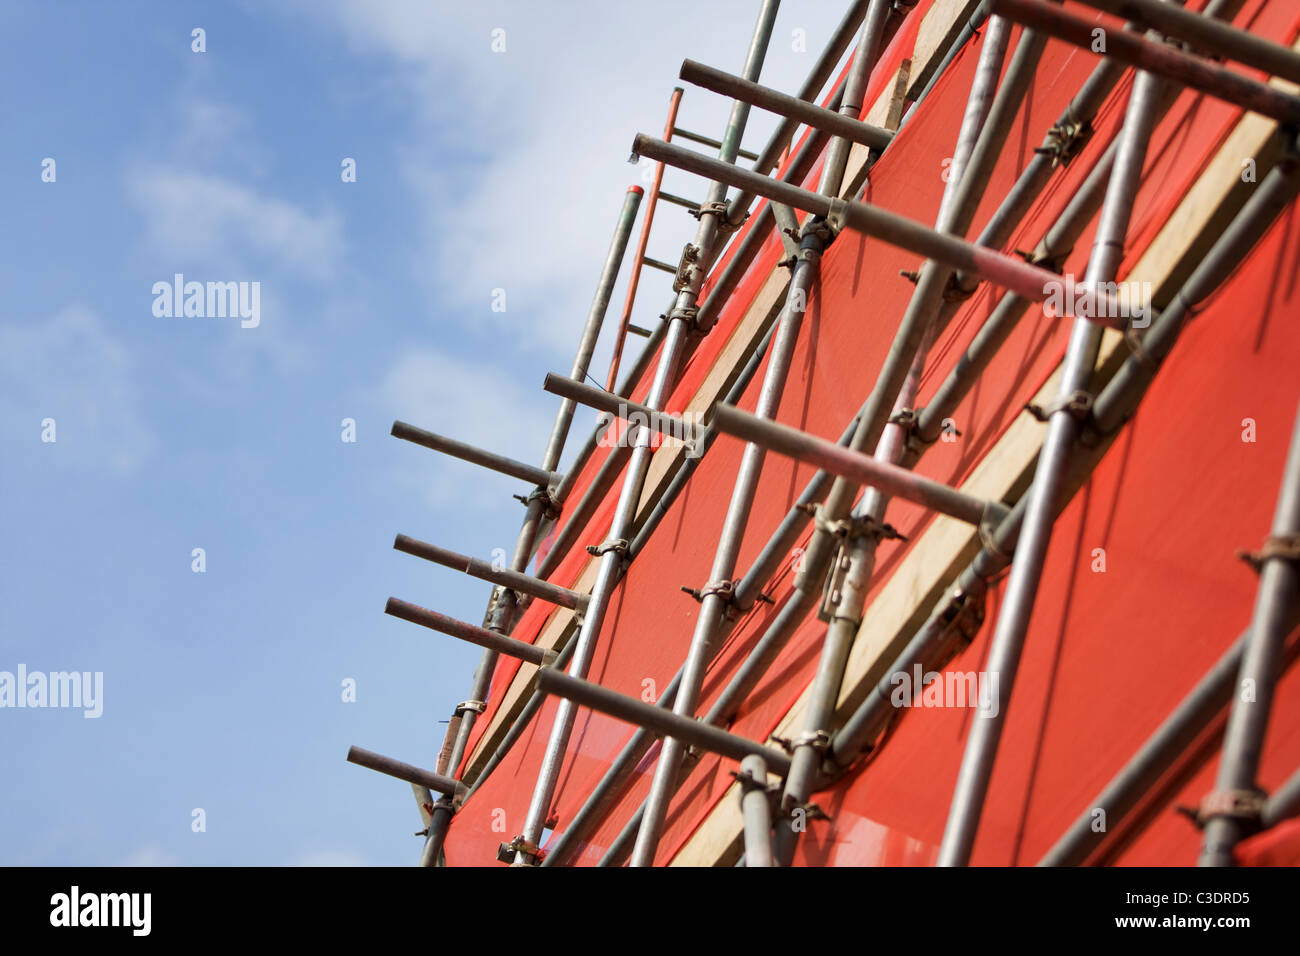 Scaffolding on a building - Stock Image